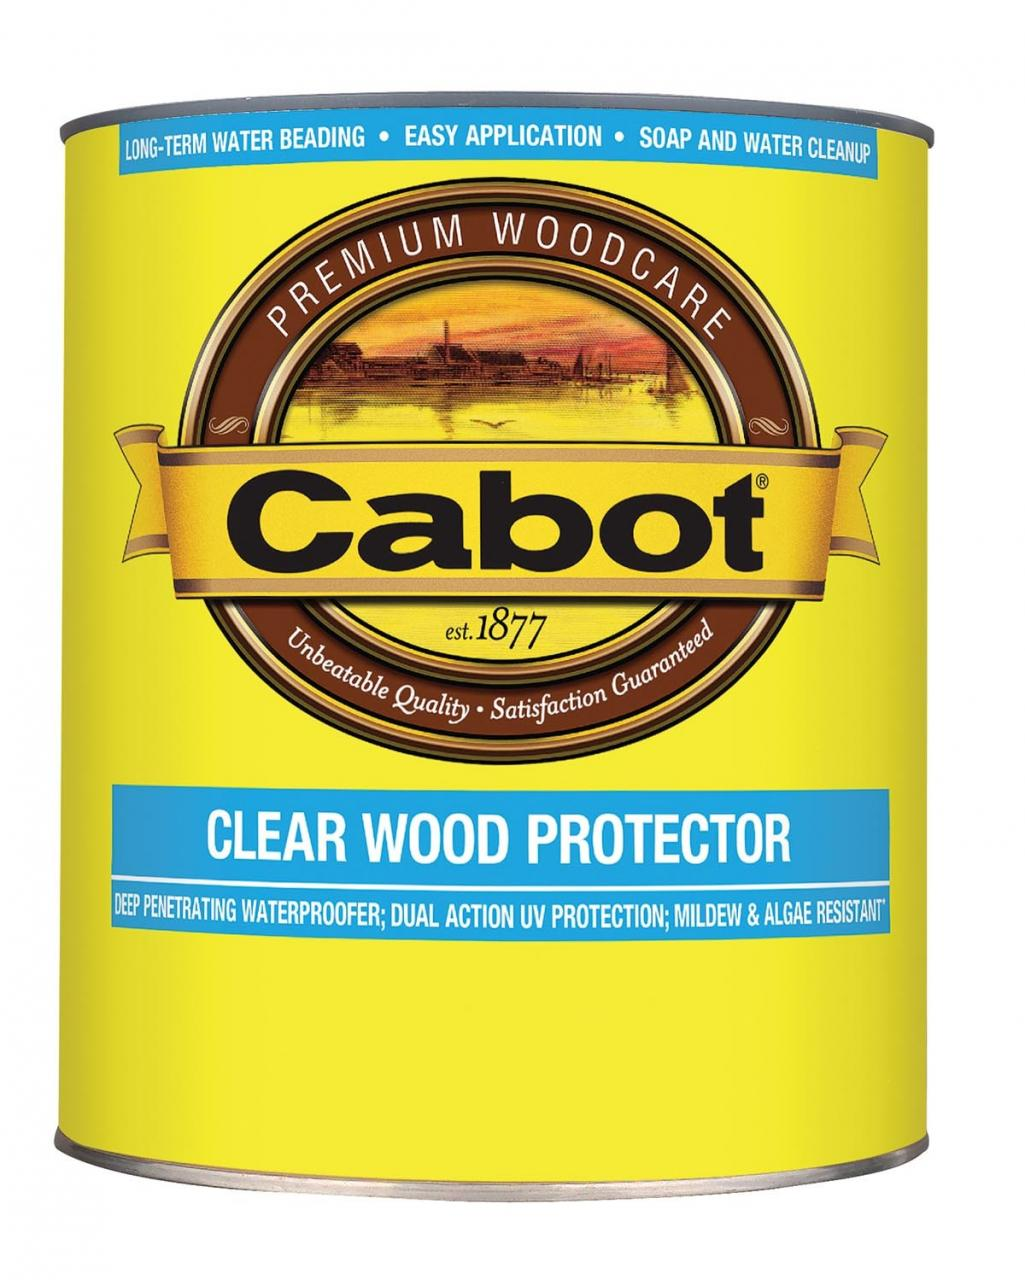 Deck wood protector